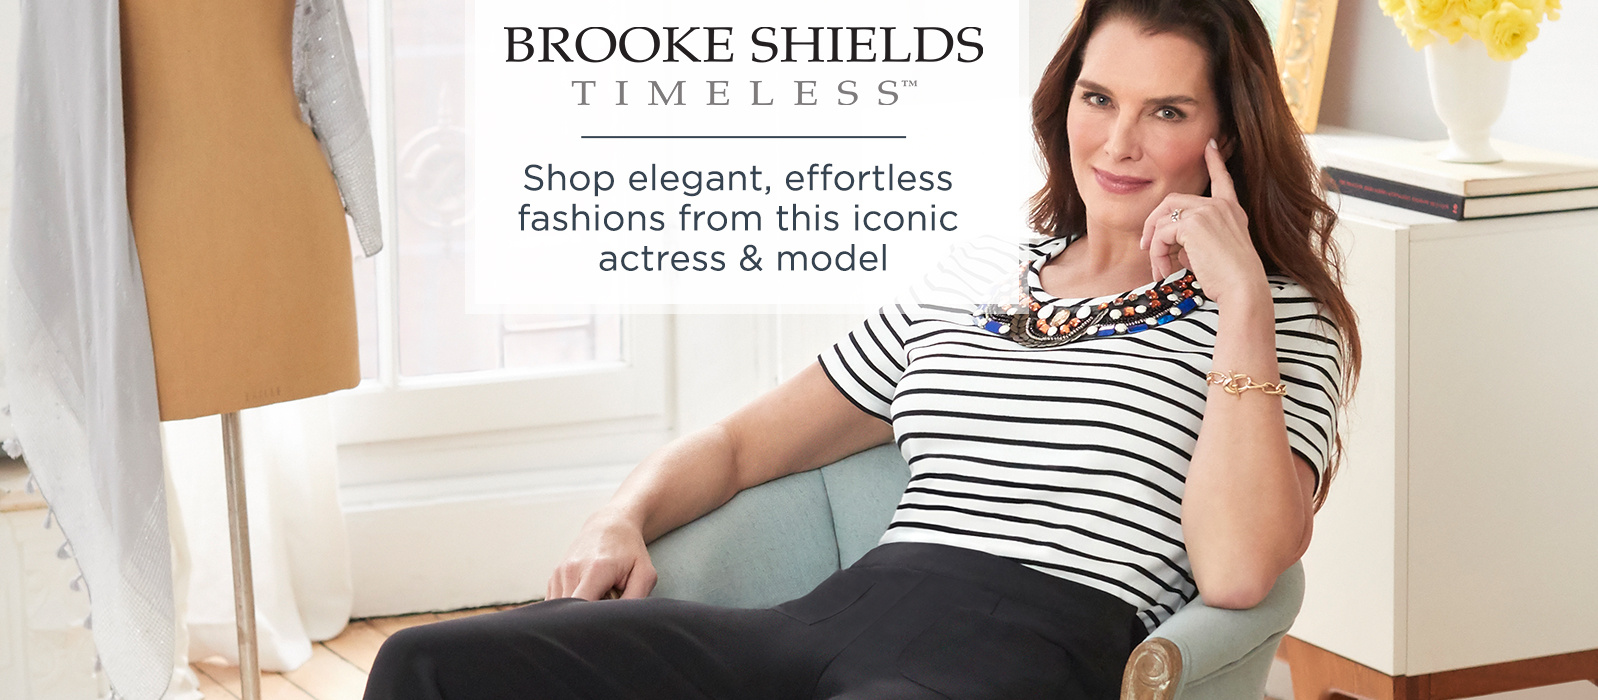 Brooke Shields Timeless.  Shop elegant, effortless fashions from this iconic actress & model.